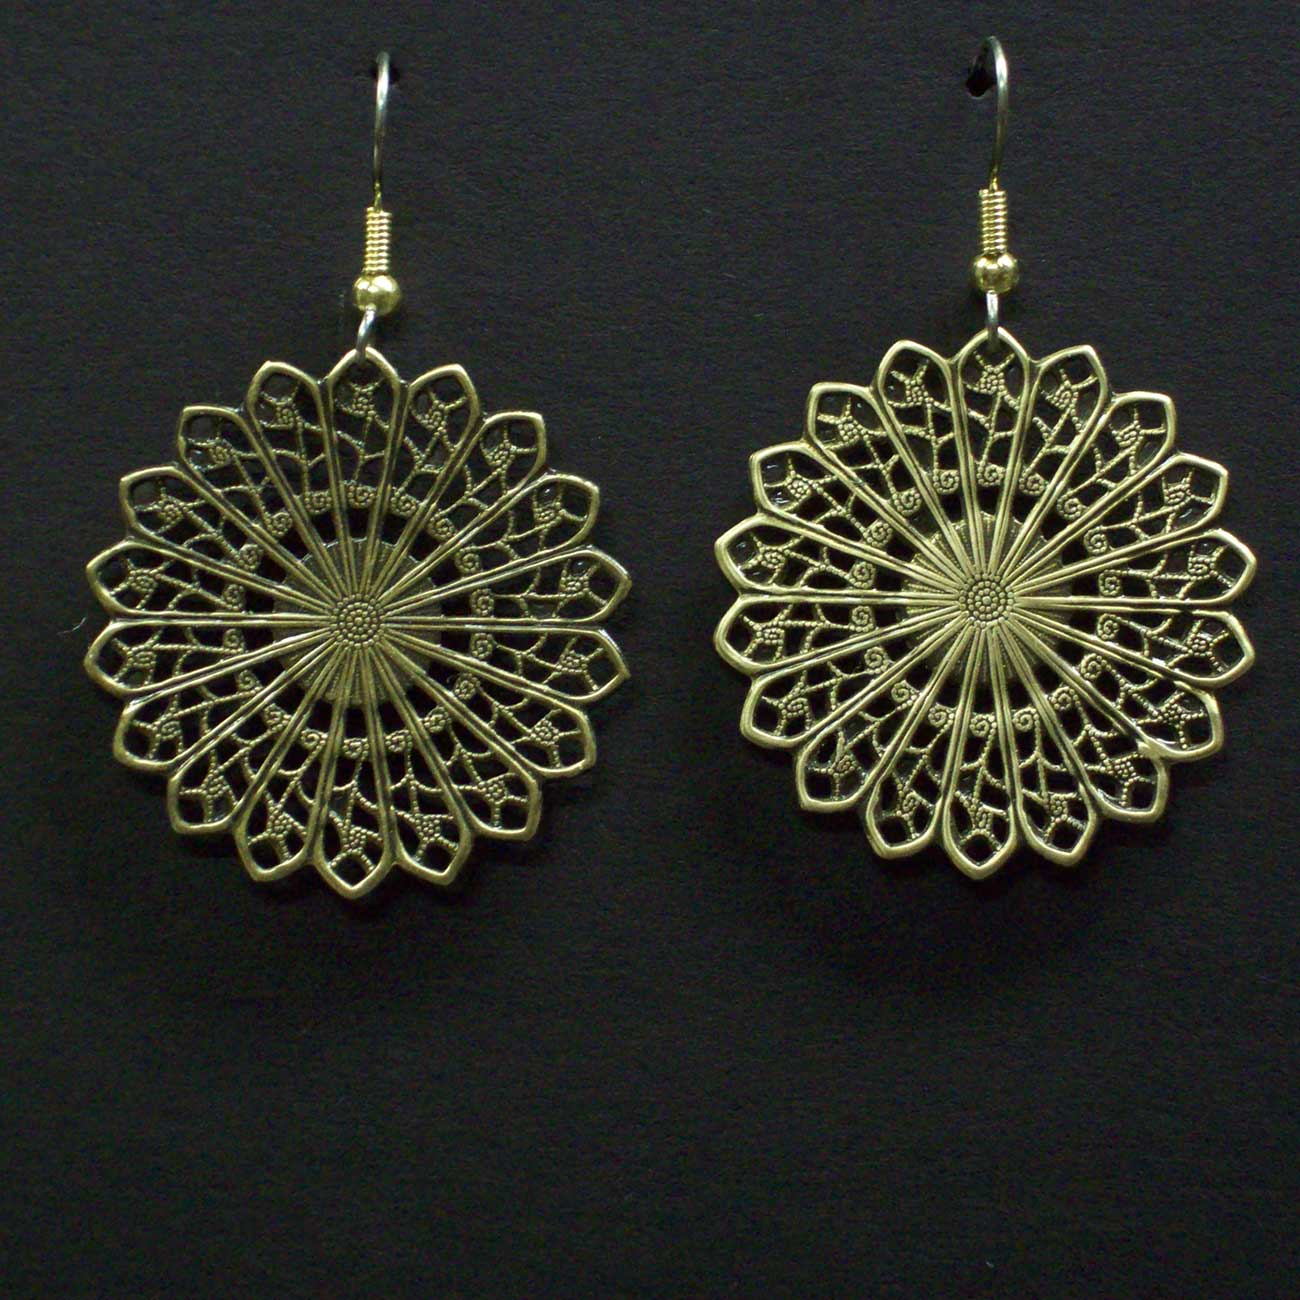 20 Point Filigree Earrings